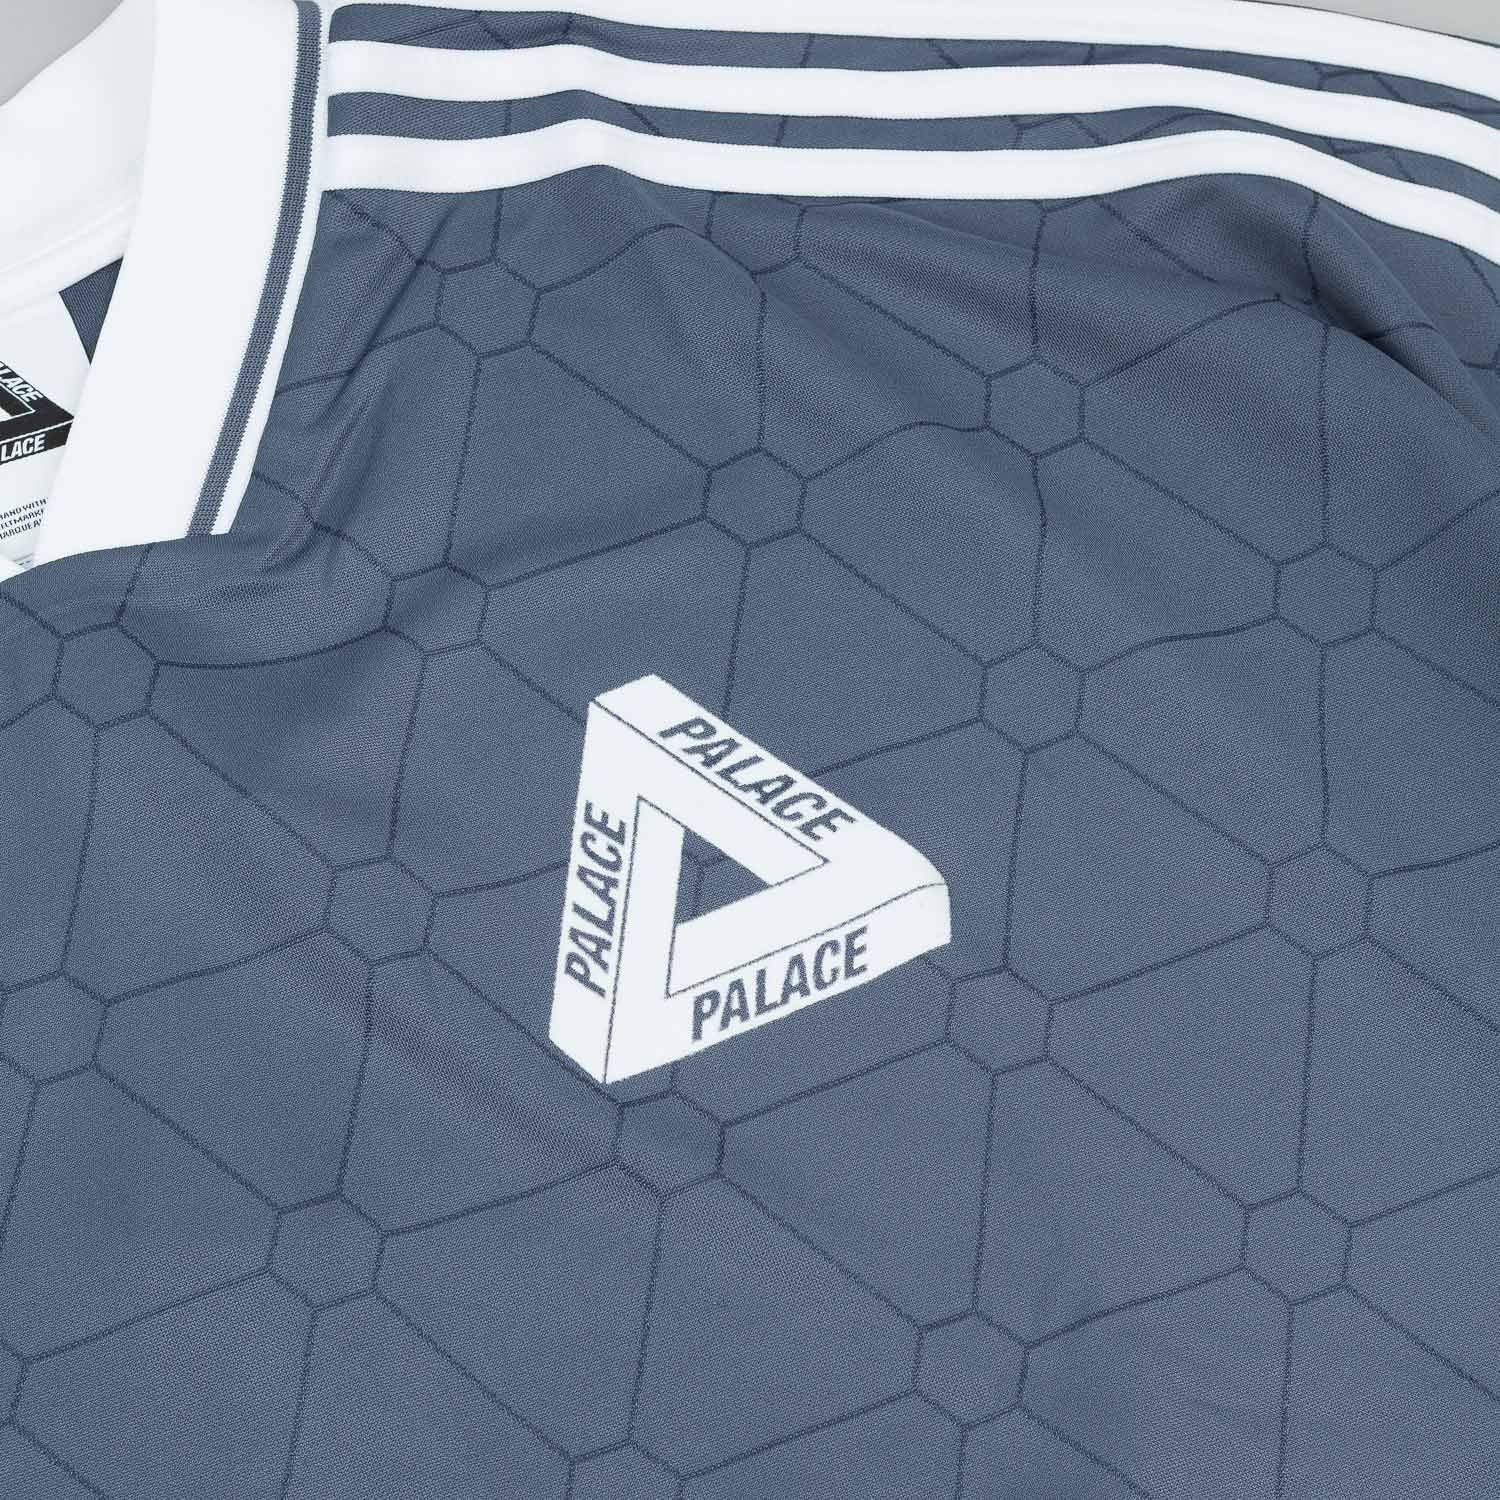 Adidas x Palace Team Shirt Short Sleeve Onix